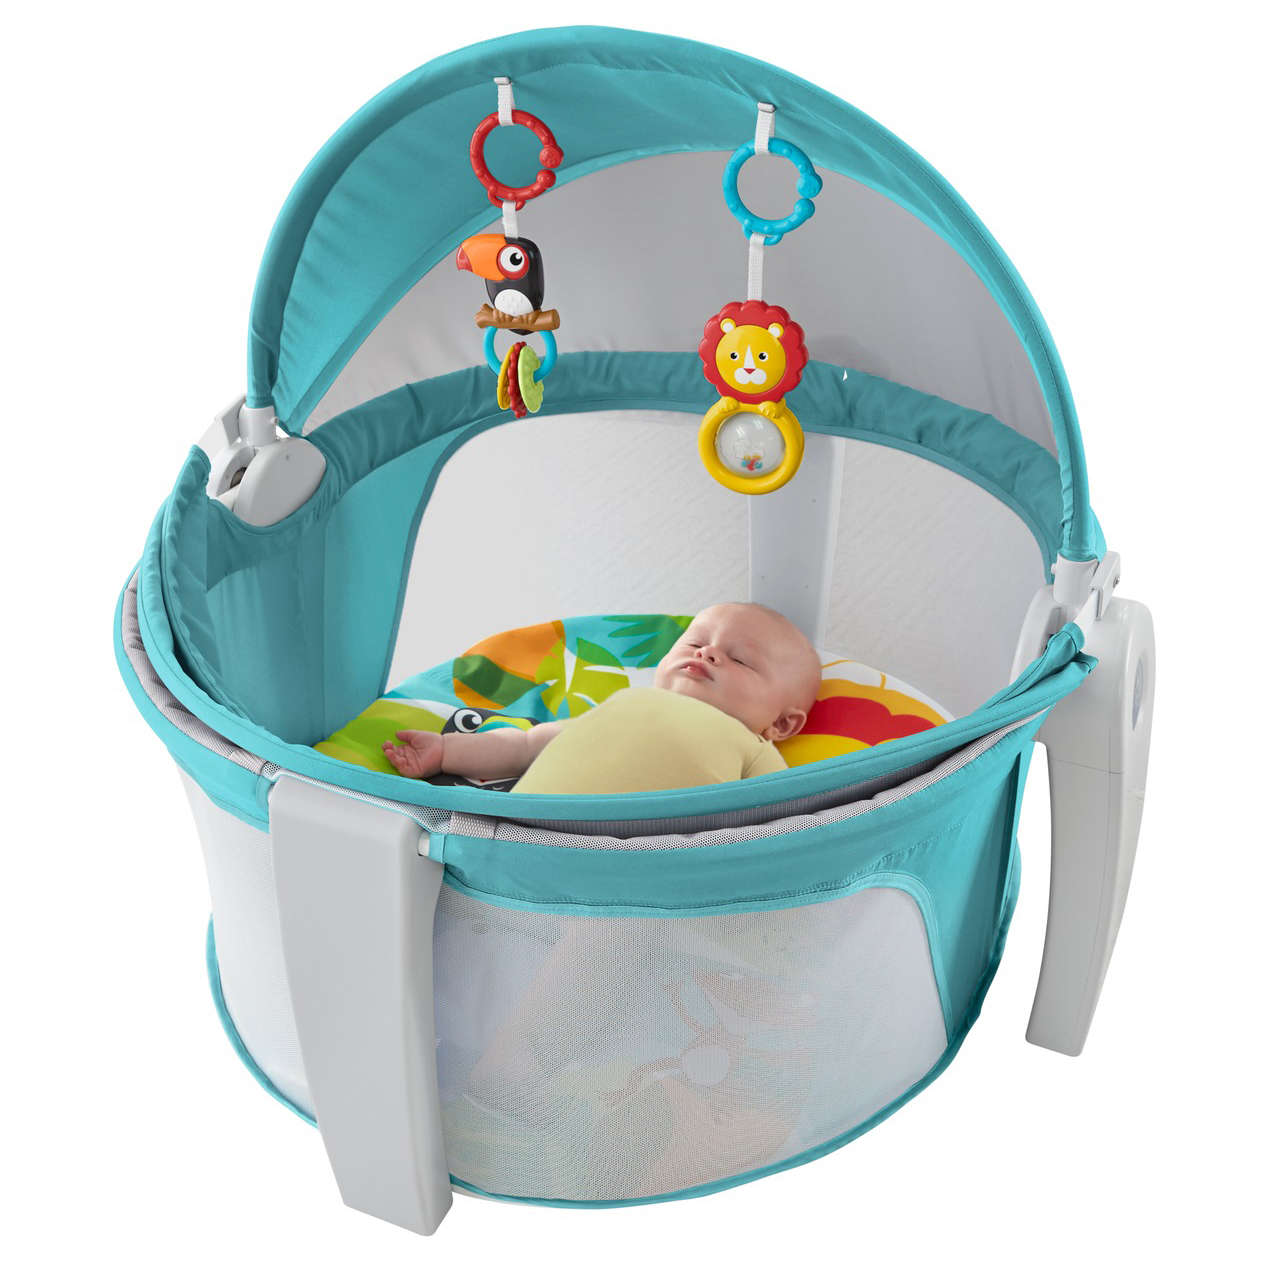 Fisher-Price On-The-Go Baby Dome  sc 1 st  Walmart & Fisher-Price On-The-Go Baby Dome - Walmart.com